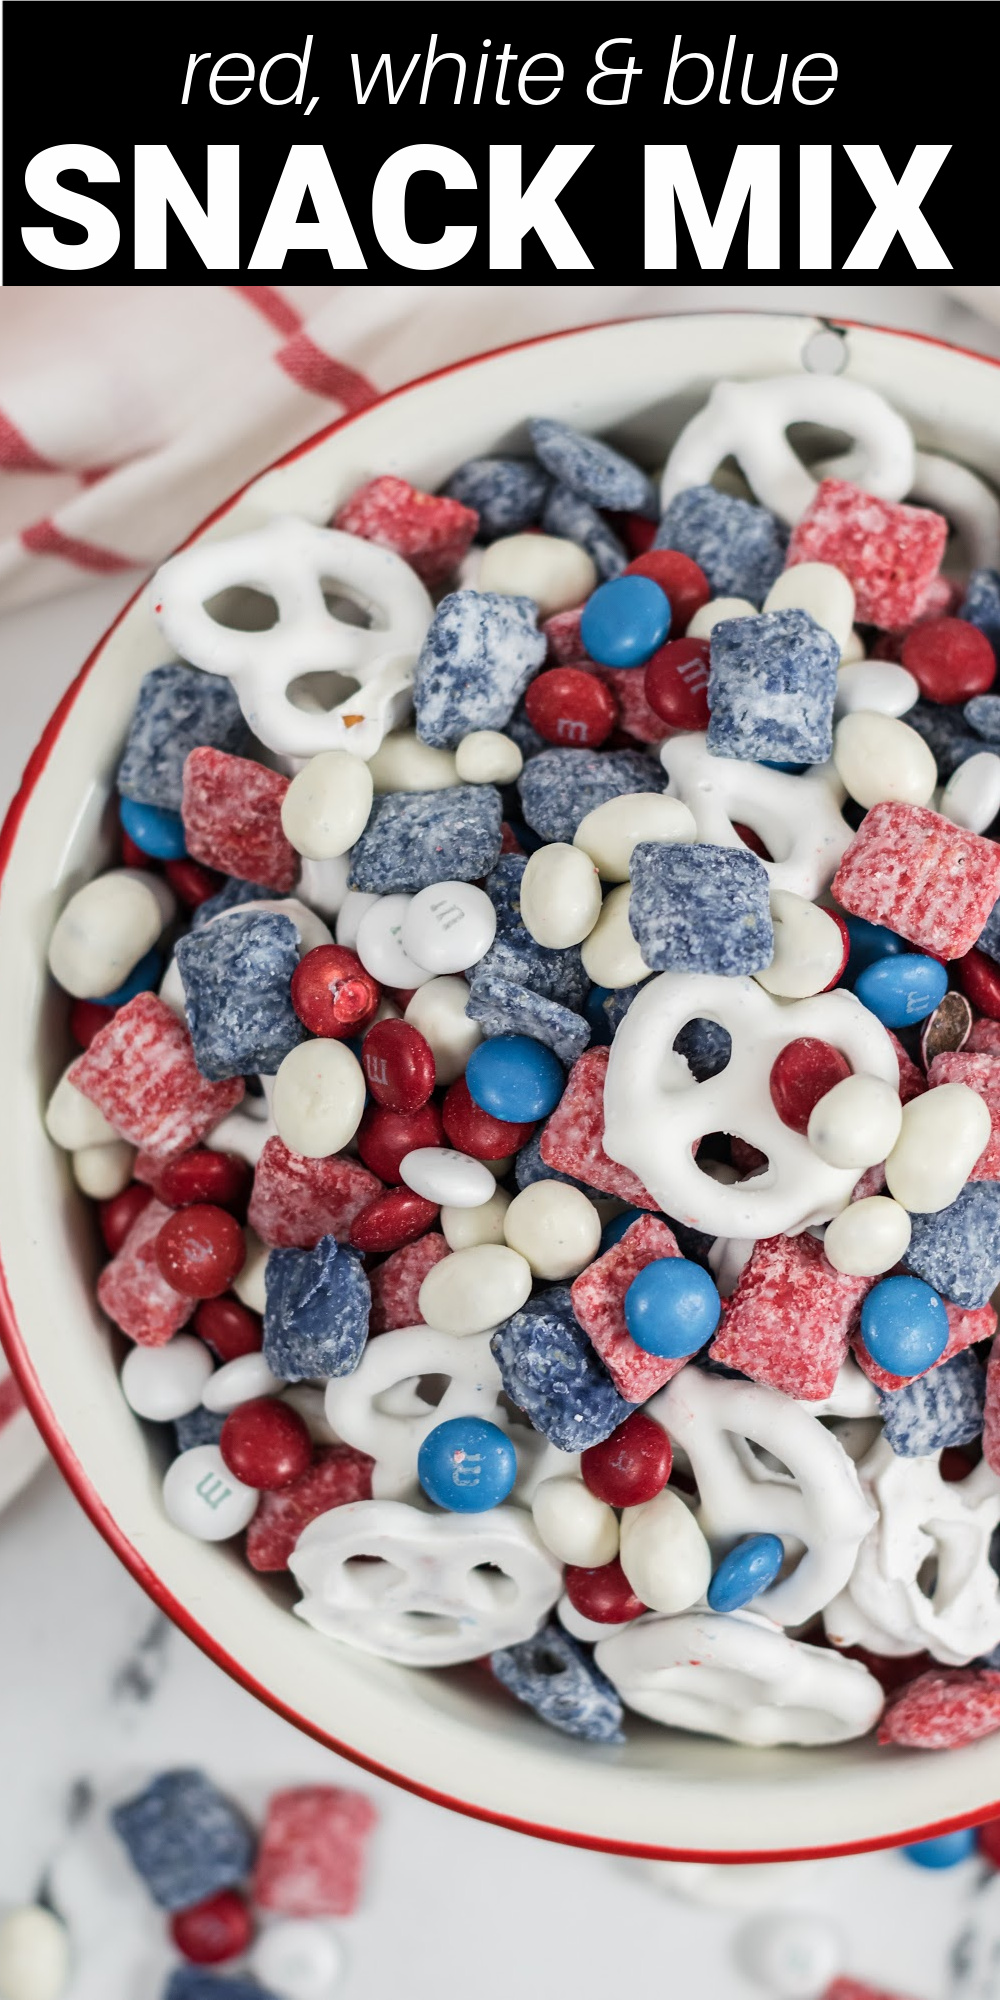 Red, white, and blue snack mix is an addictive sweet and salty treat perfect for summer snacking! It's a fun dish to bring to a potluck, picnic, or gathering for Memorial Day, Fourth of July, and Labor Day!